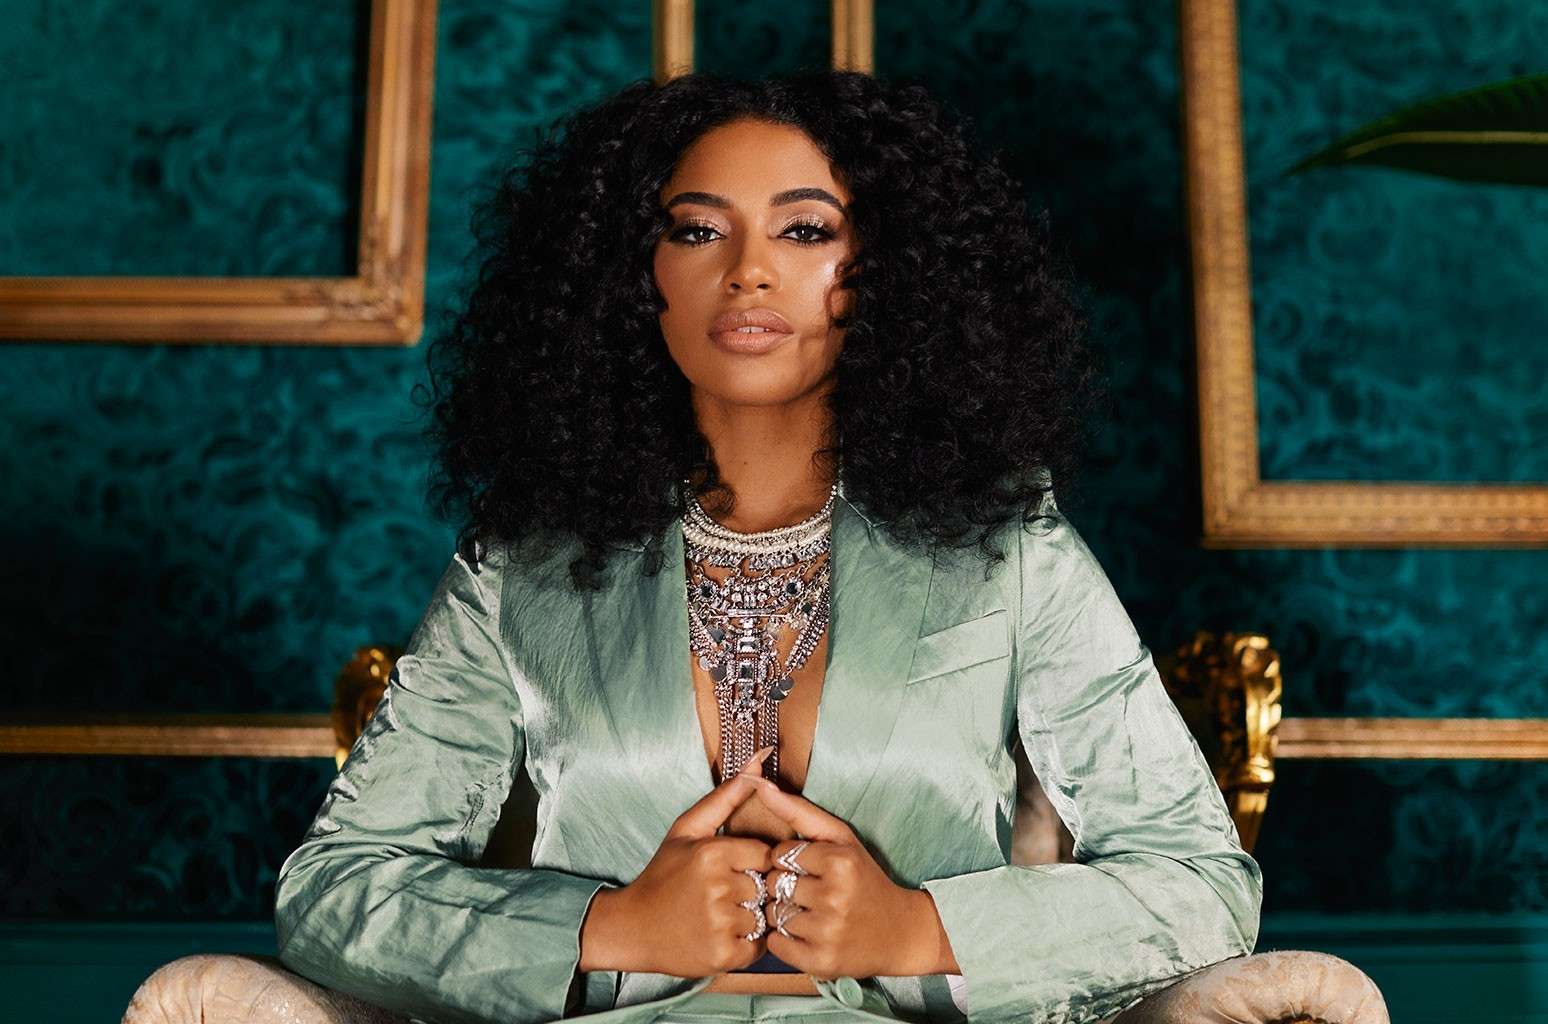 Black History Month: Ayanis Wants Women to Feel Empowered With Her 'Strength in Numbers' Playlist